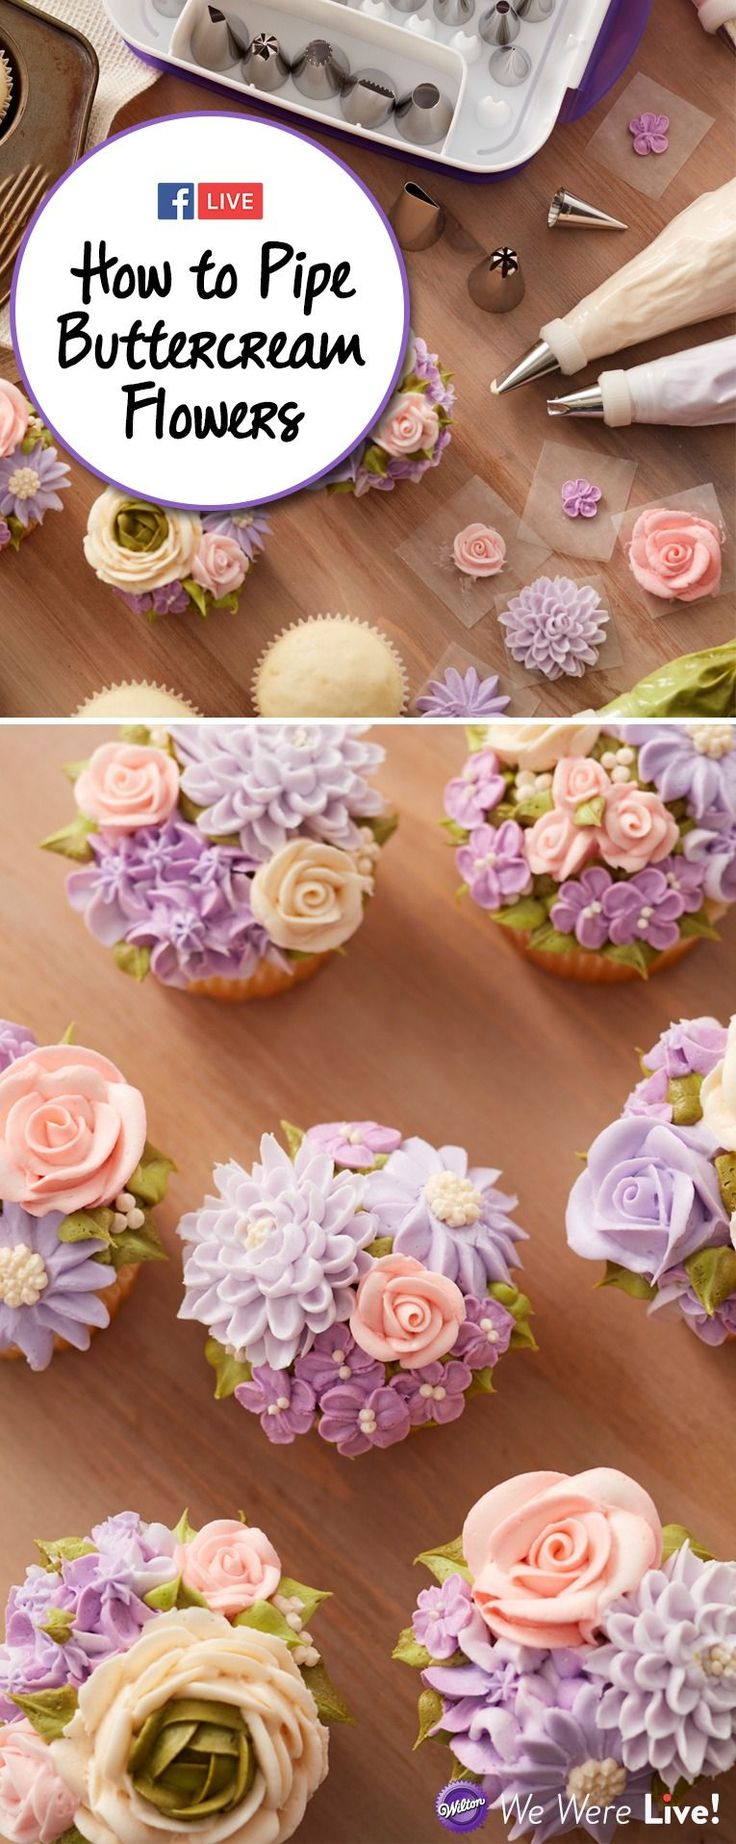 TUTORIAL - Learn how to pipe buttercream flowers to make beautiful cupcakes! This Facebook Live episode by Wilton Cake Decorating will show you how to make buttercream flowers like Chrysanthemum, Ranunculus, and Daisy. #cakedecoratingtips